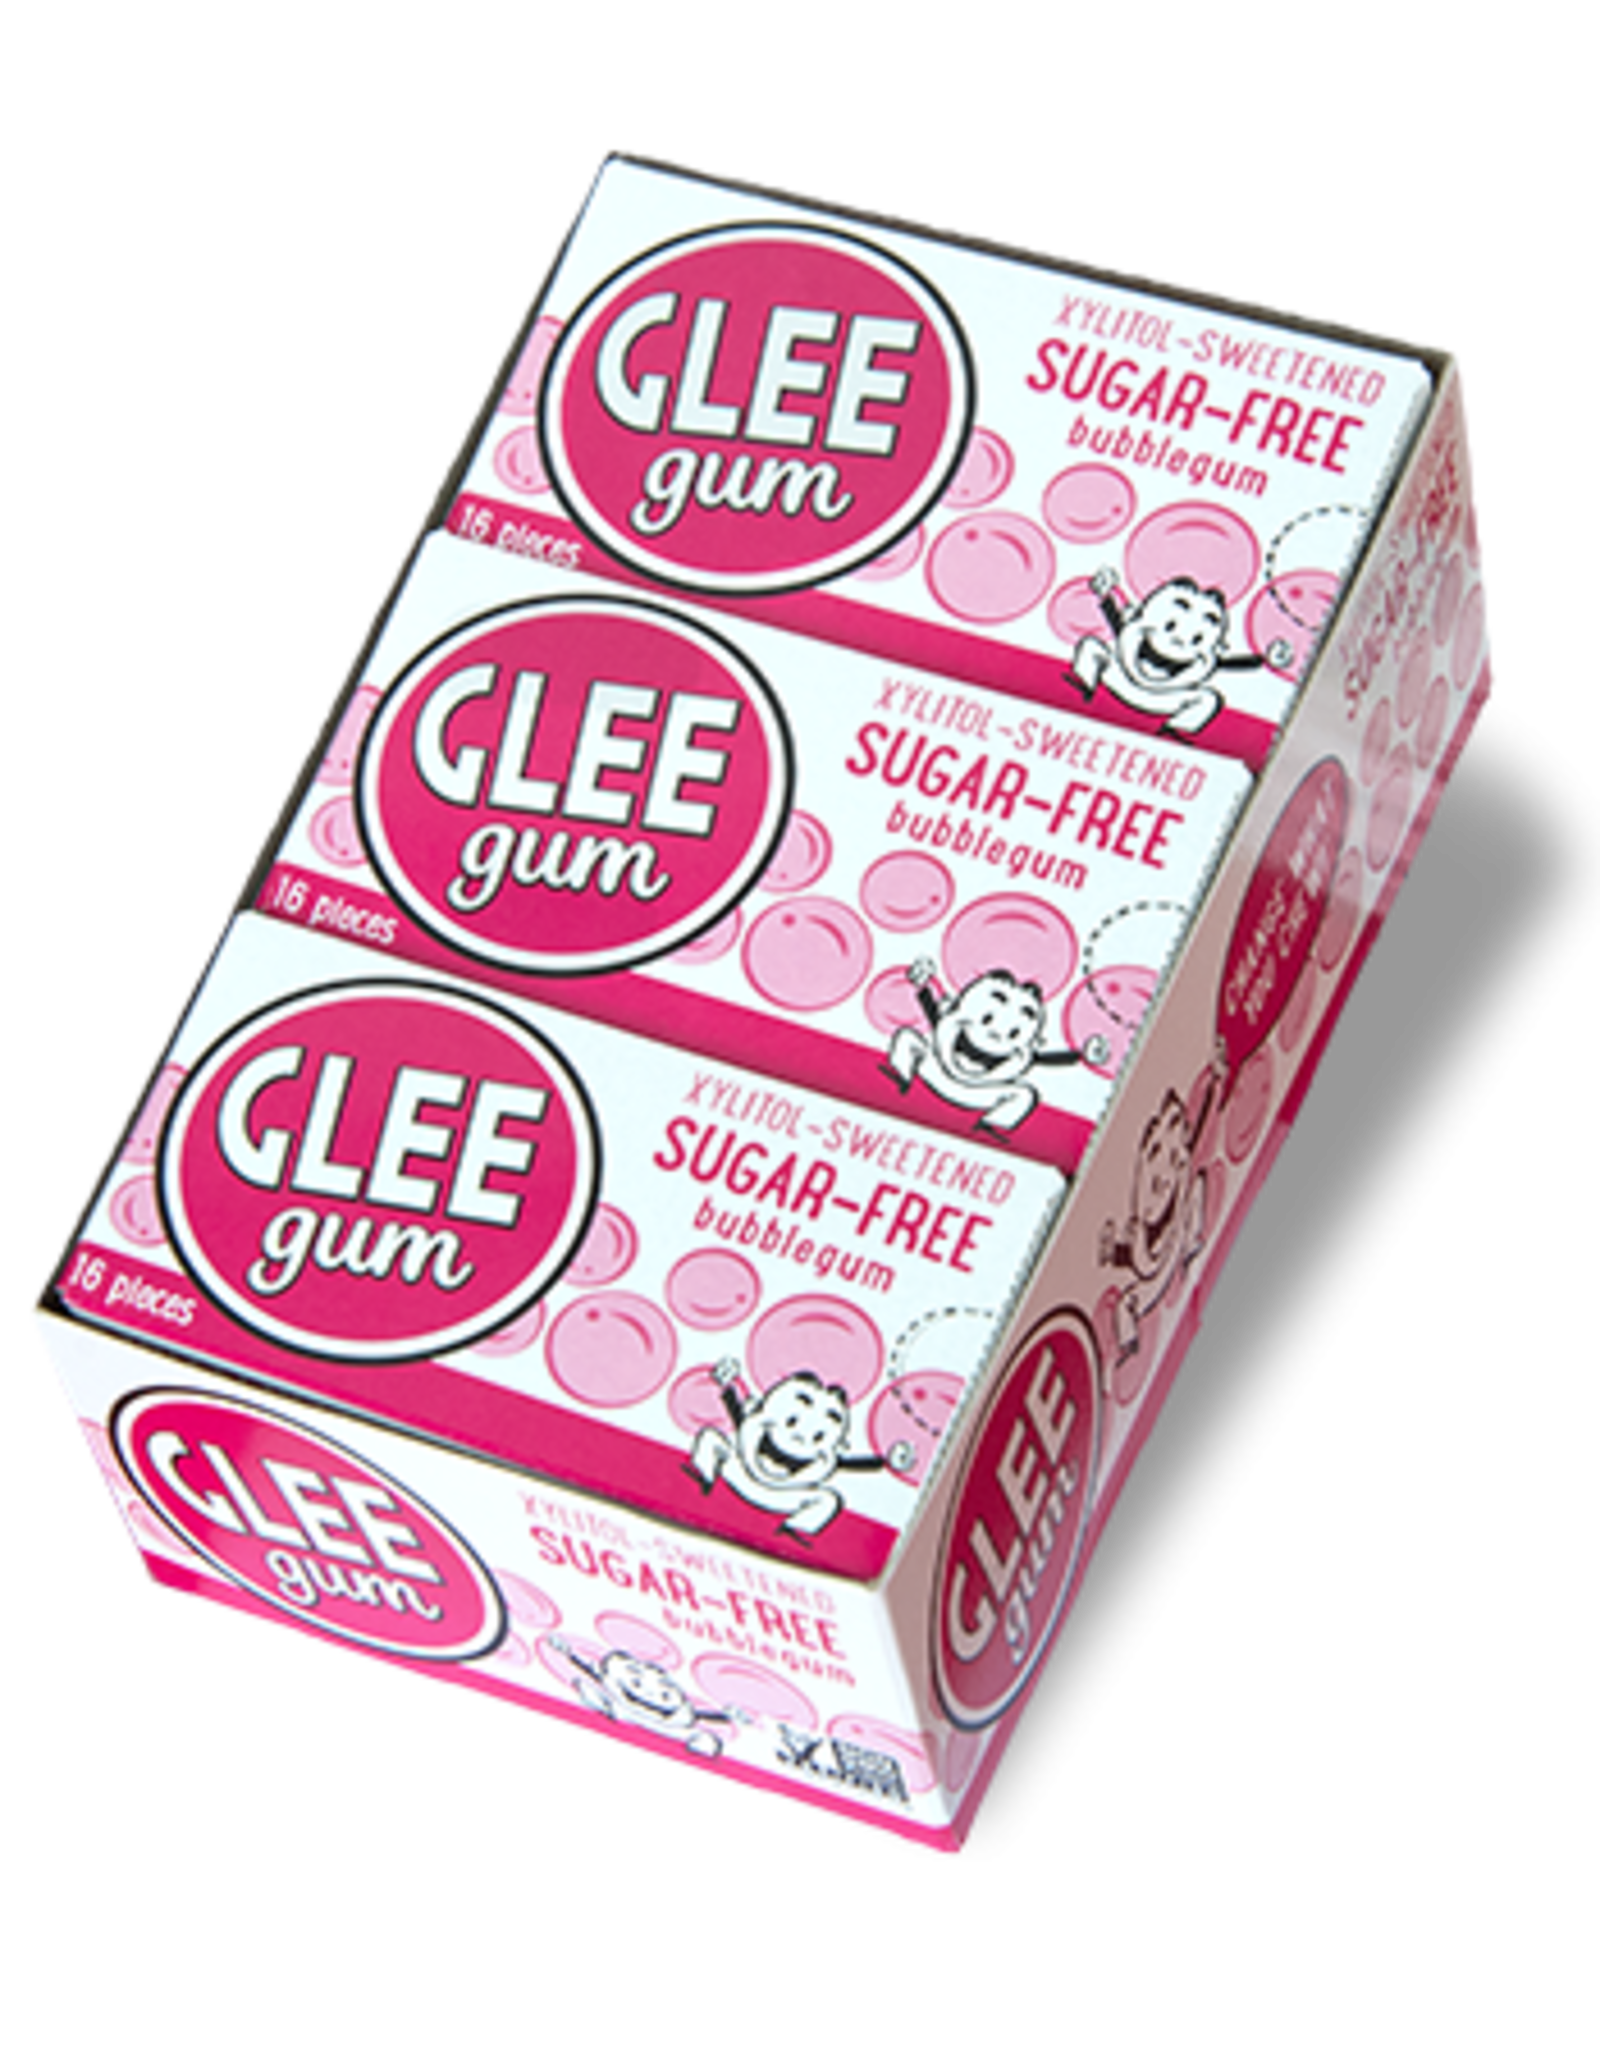 Glee Gum Bubblegum Sugar-Free Gum - Xylitol Sweetened - 16pcs